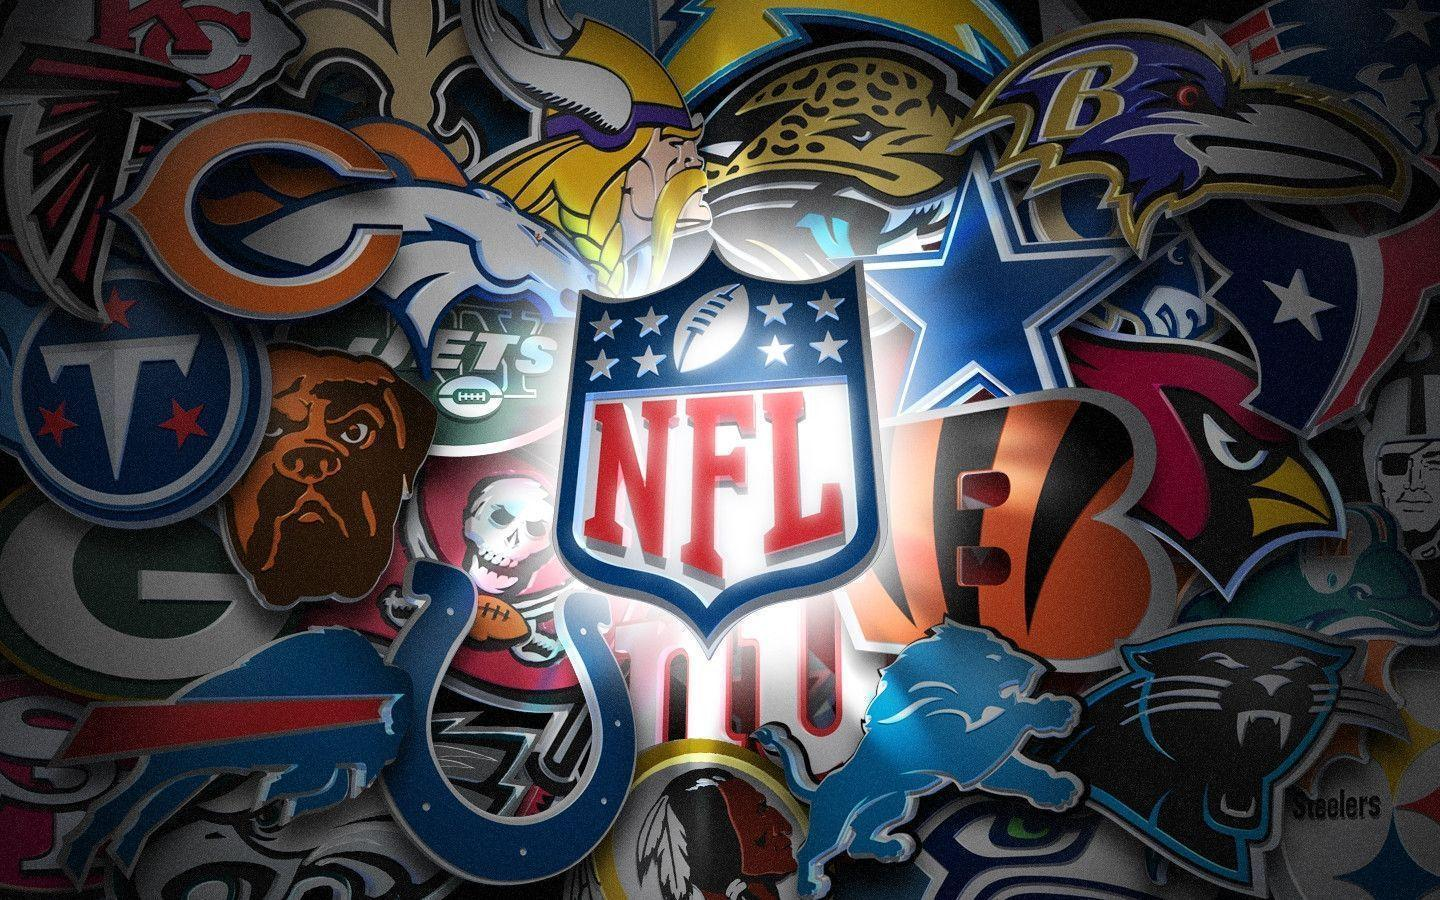 nfl teams wallpaper  NFL Teams Wallpapers 2016 - Wallpaper Cave